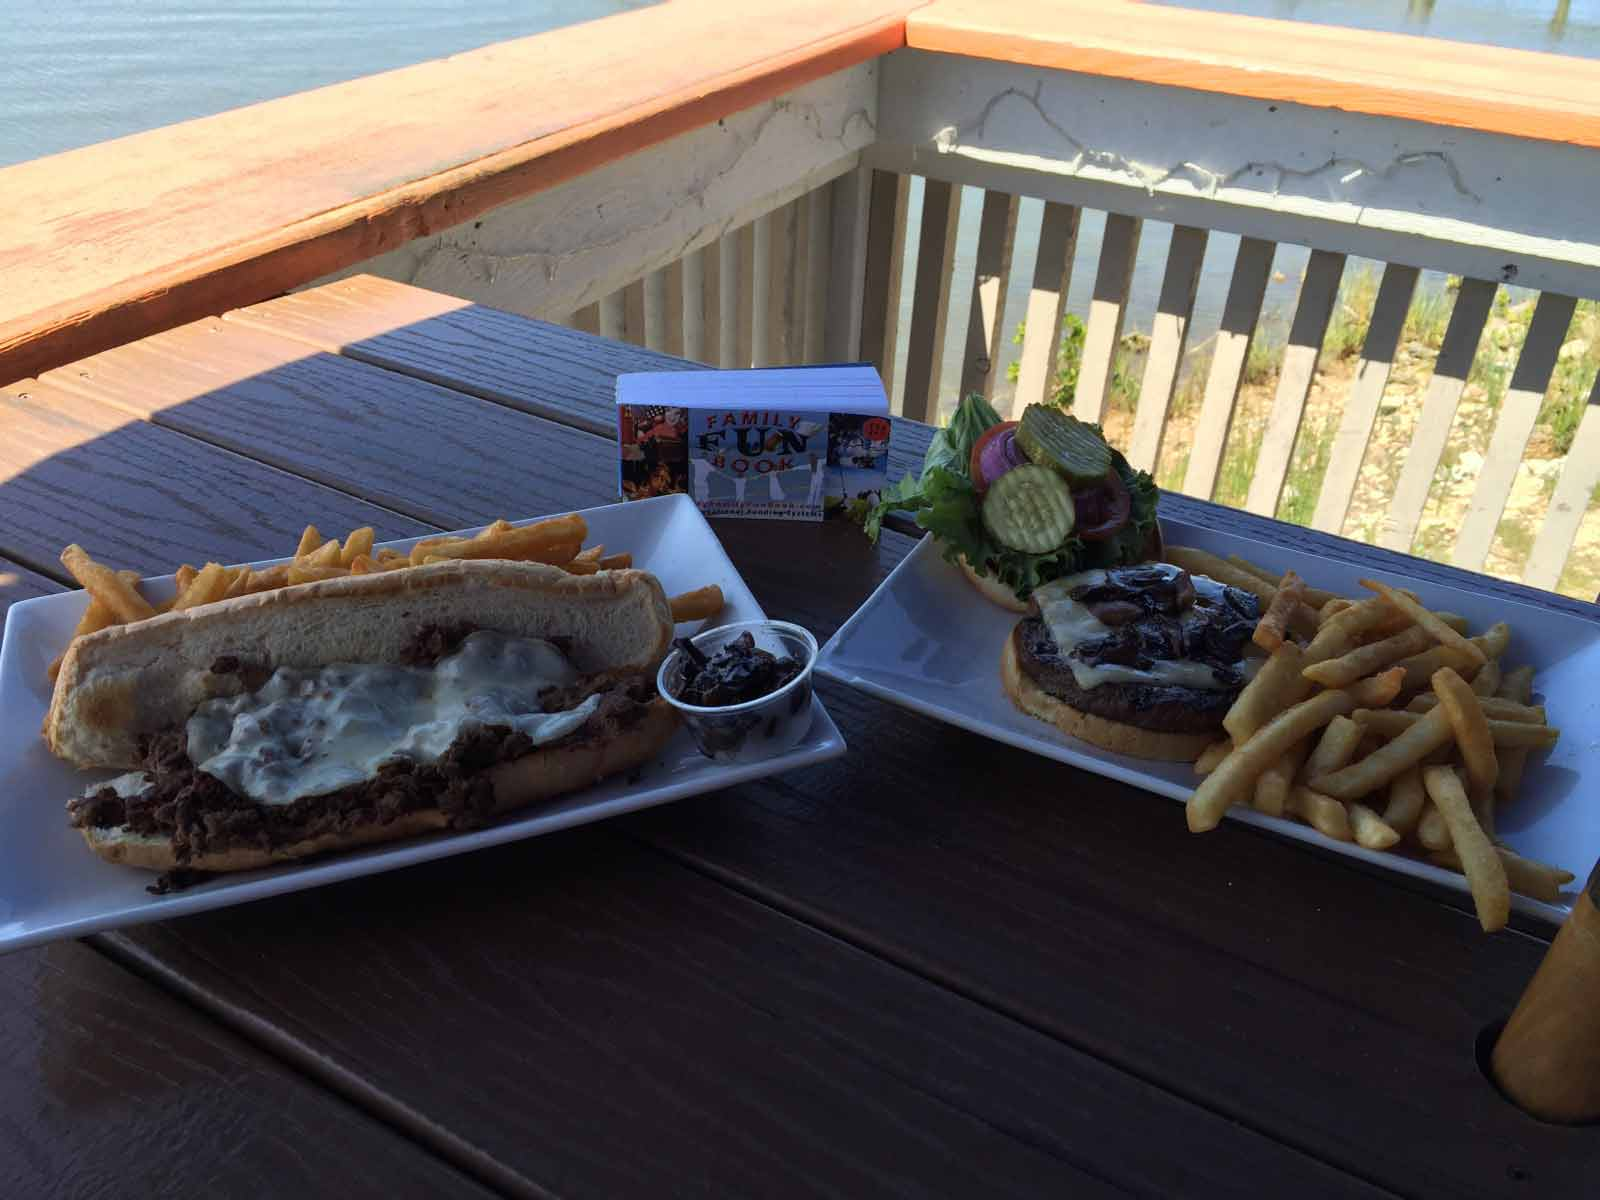 Sunsetters Riverfront Bar food recived with coupon in The Family Fun Book - Daytona Beach Florida